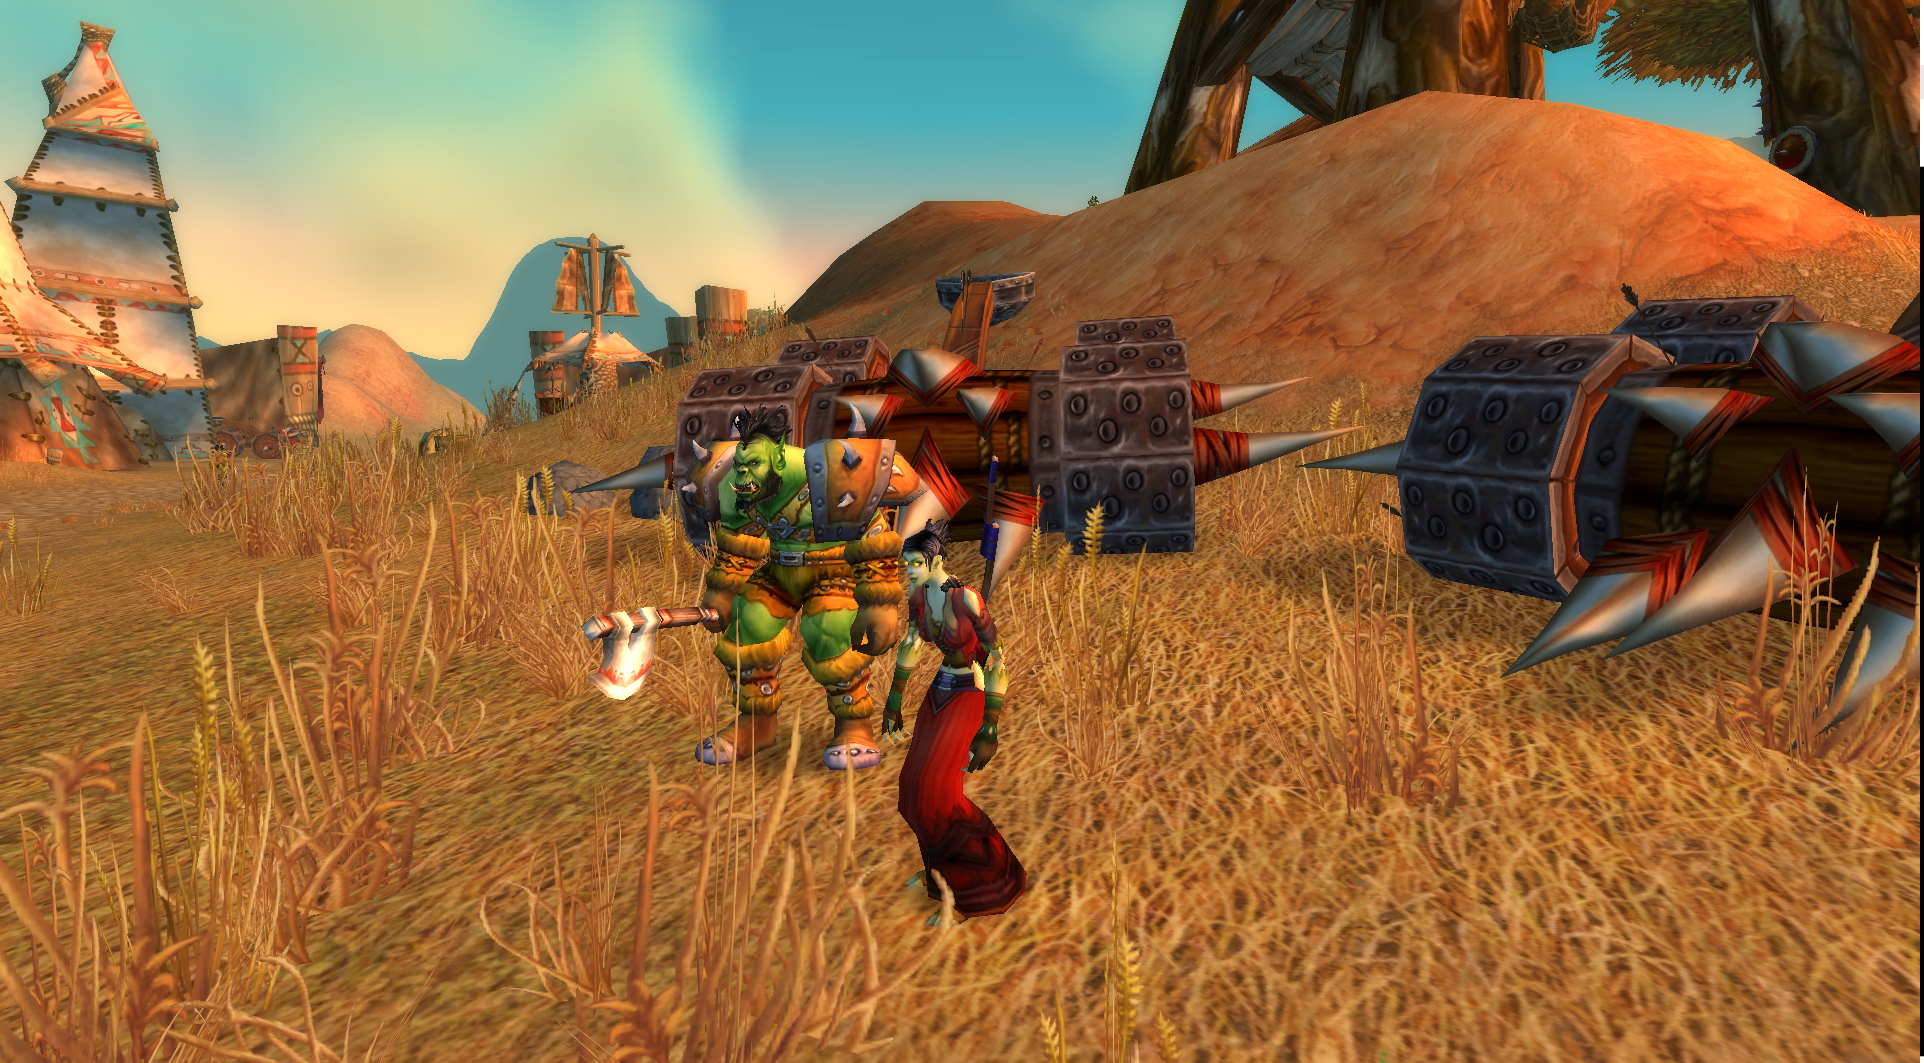 World of Warcraft: Classic will require commitment, patience and friends